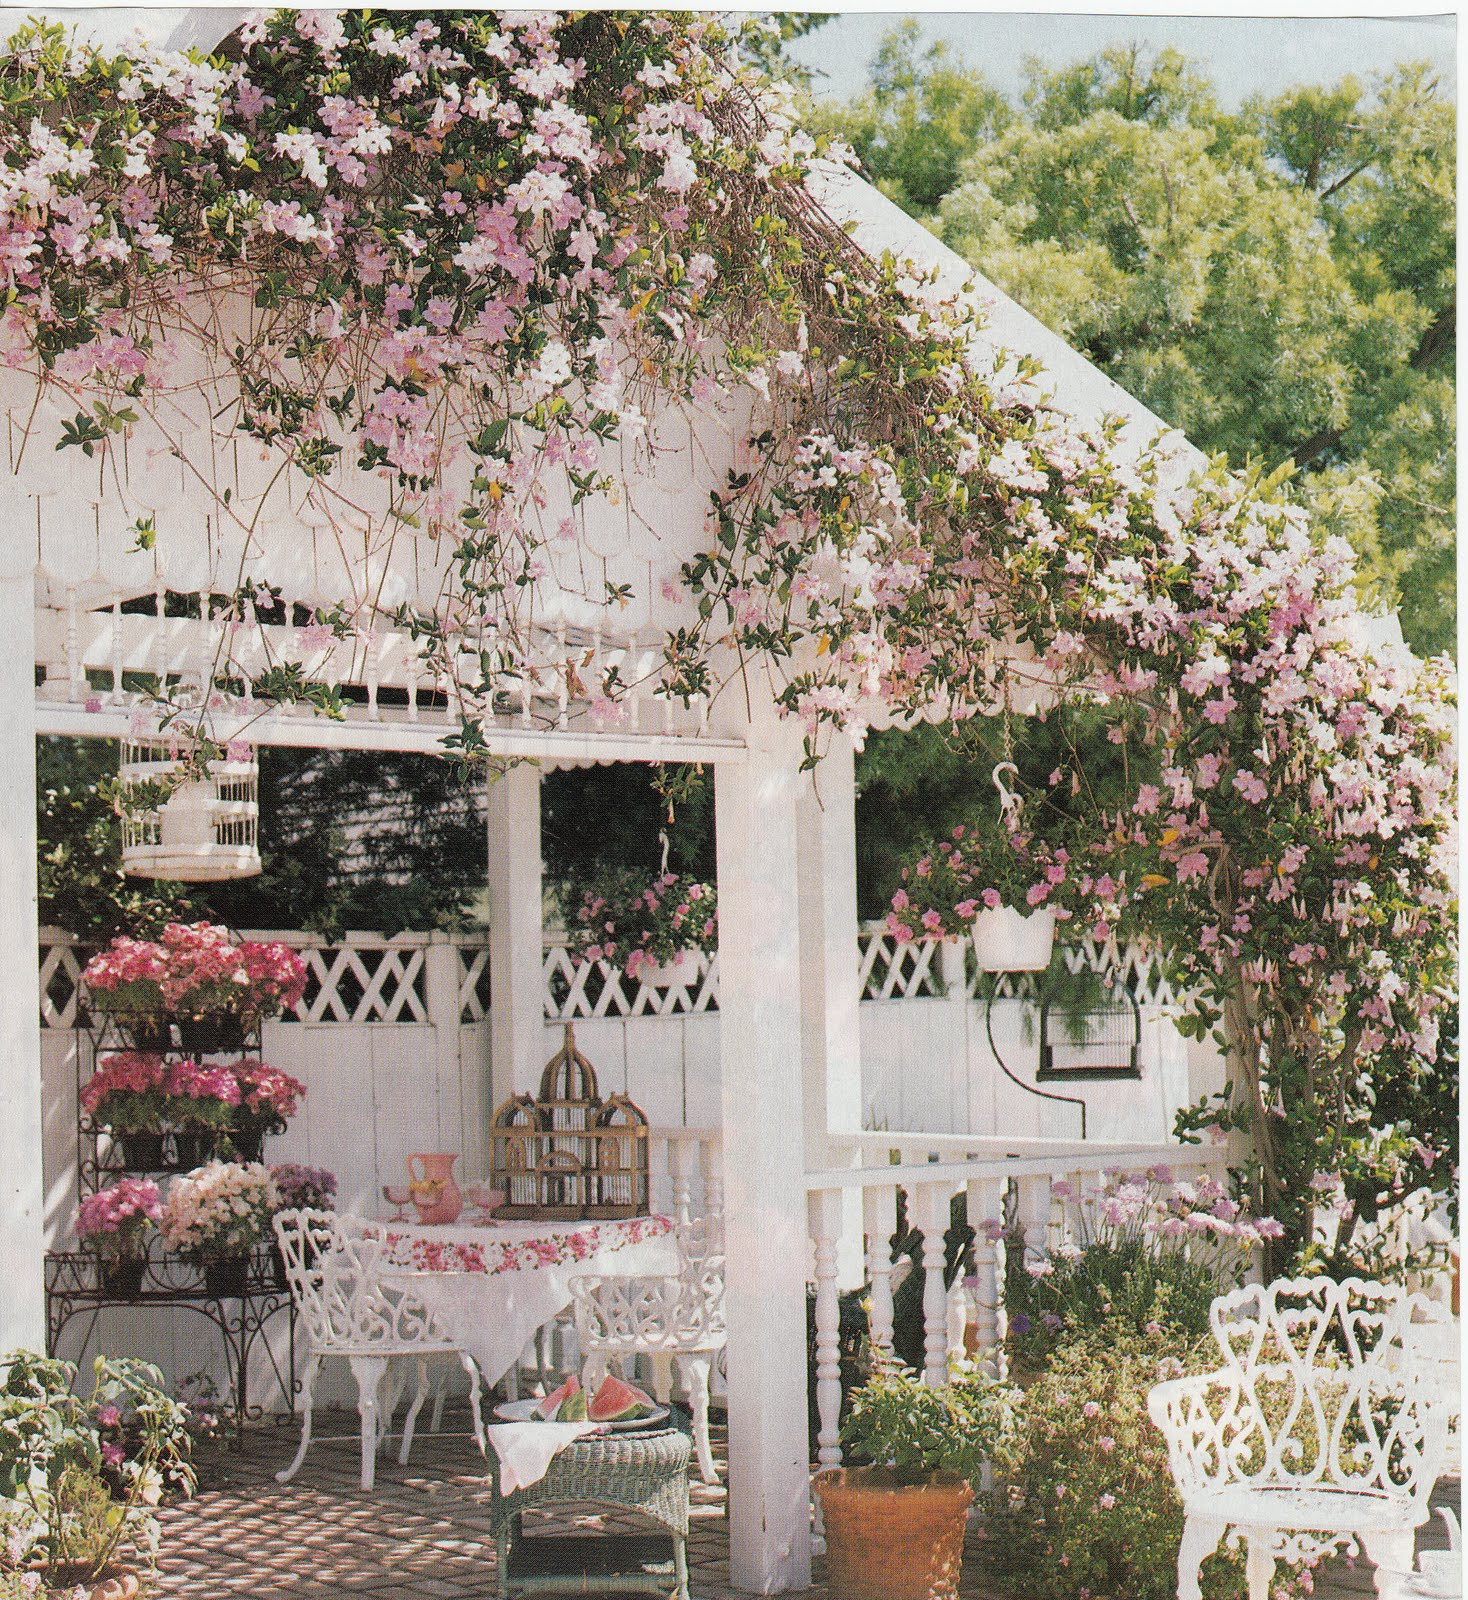 Al Fresco Hydrangea Hill Cottage Dining Al Fresco